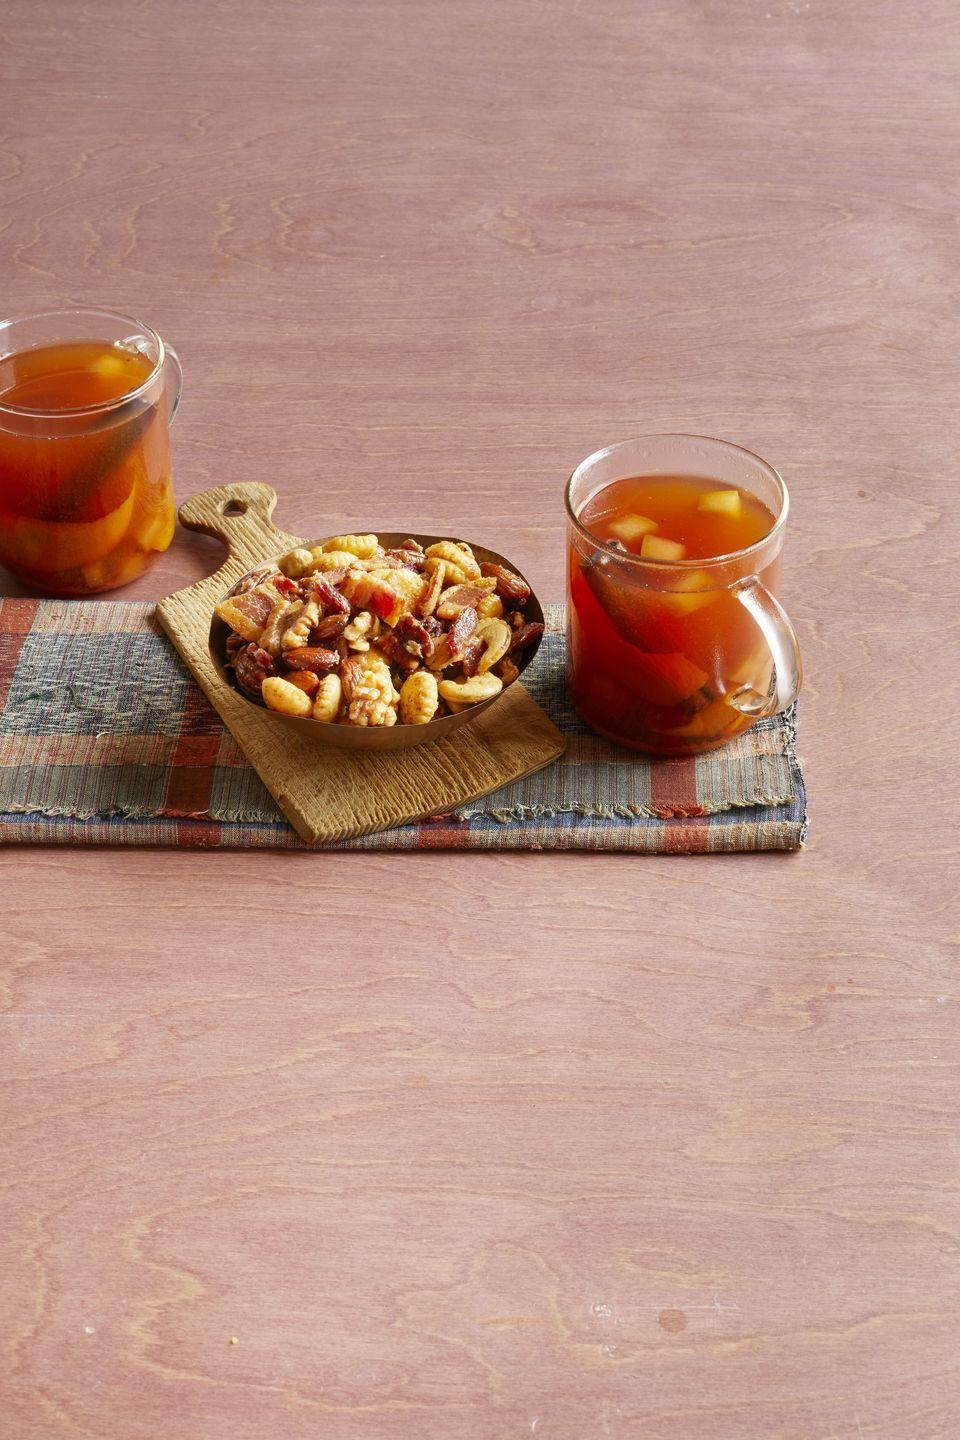 """<p>A splash of bourbon turns this fall favorite into a cozy cocktail. It's the perfect pick-me-up after a day of raking leaves.</p><p><strong><a href=""""https://www.thepioneerwoman.com/food-cooking/recipes/a32304617/mulled-cider-with-bourbon-recipe/"""" rel=""""nofollow noopener"""" target=""""_blank"""" data-ylk=""""slk:Get the recipe."""" class=""""link rapid-noclick-resp"""">Get the recipe.</a></strong></p><p><strong><a class=""""link rapid-noclick-resp"""" href=""""https://go.redirectingat.com?id=74968X1596630&url=https%3A%2F%2Fwww.walmart.com%2Fbrowse%2Fhome%2Fcoffee-mugs%2F4044_623679_639999_3148543_9383607%3Ffacet%3Dbrand%253AThe%2BPioneer%2BWoman&sref=https%3A%2F%2Fwww.thepioneerwoman.com%2Ffood-cooking%2Fmeals-menus%2Fg33510531%2Ffall-cocktail-recipes%2F"""" rel=""""nofollow noopener"""" target=""""_blank"""" data-ylk=""""slk:SHOP MUGS"""">SHOP MUGS</a><br></strong></p>"""